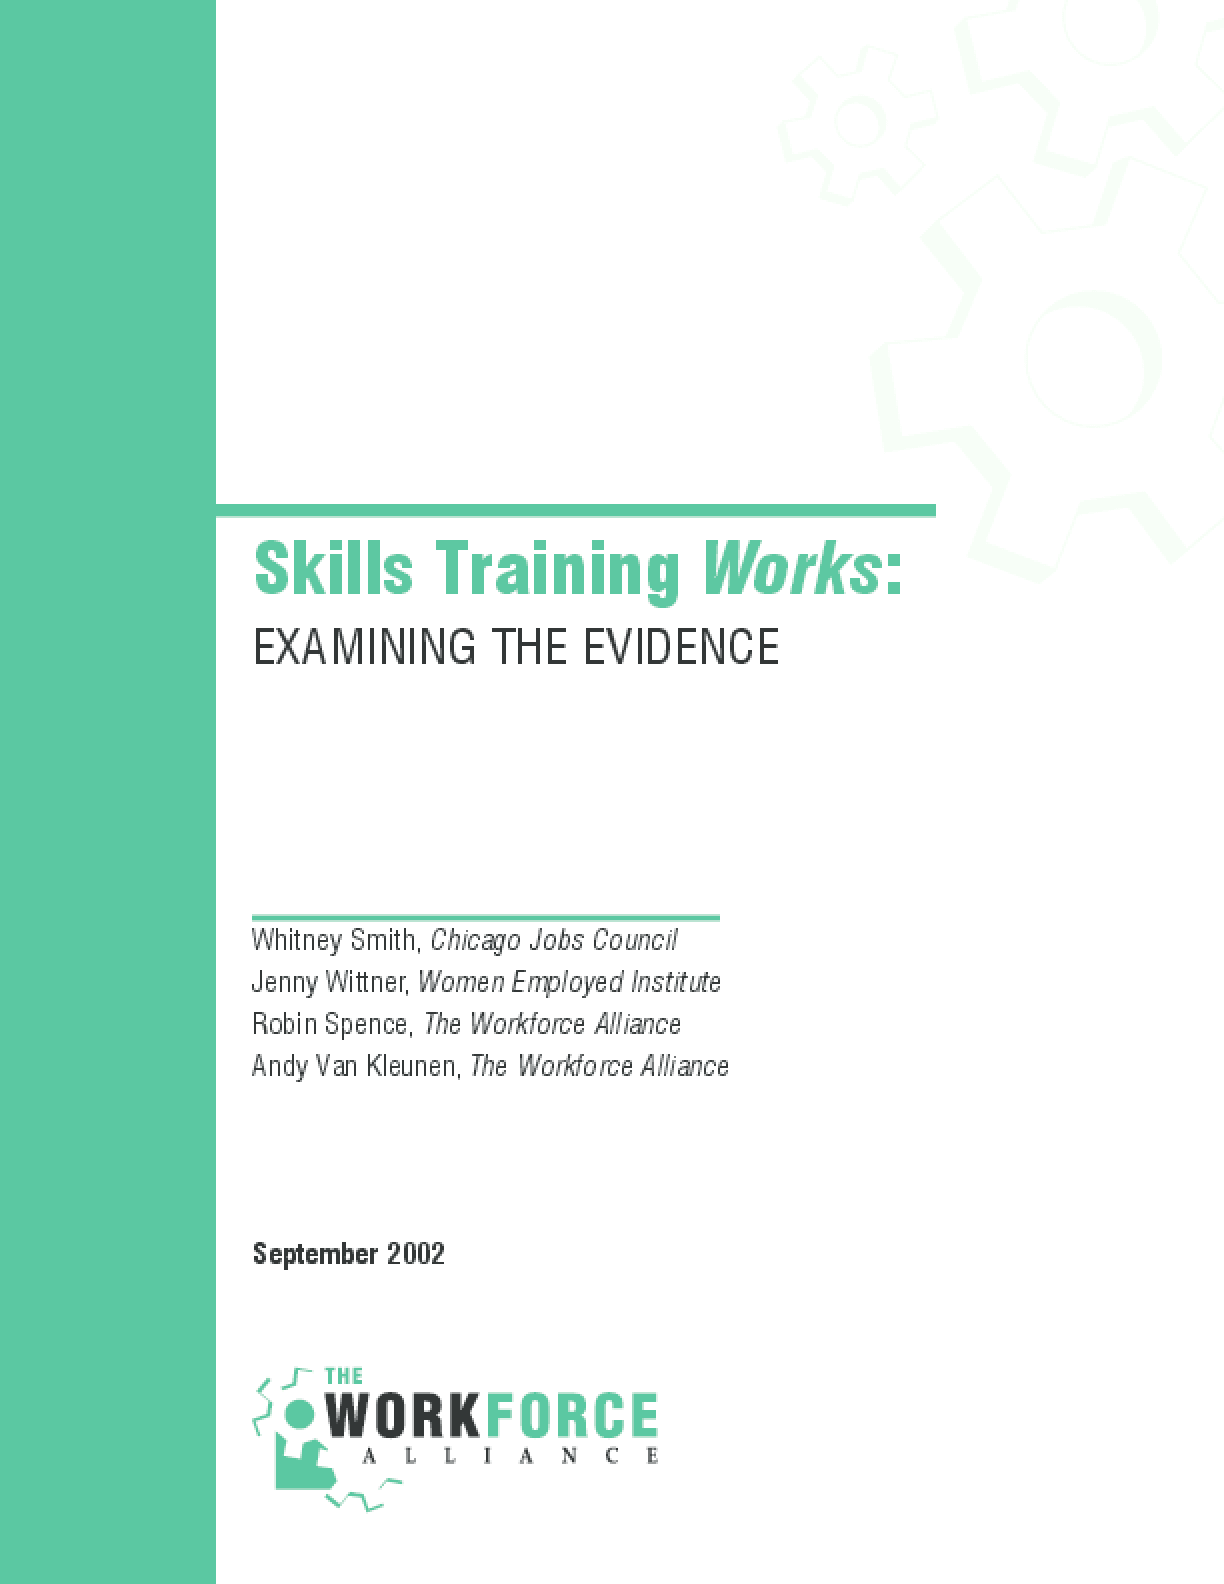 Skills Training Works: Examining the Evidence